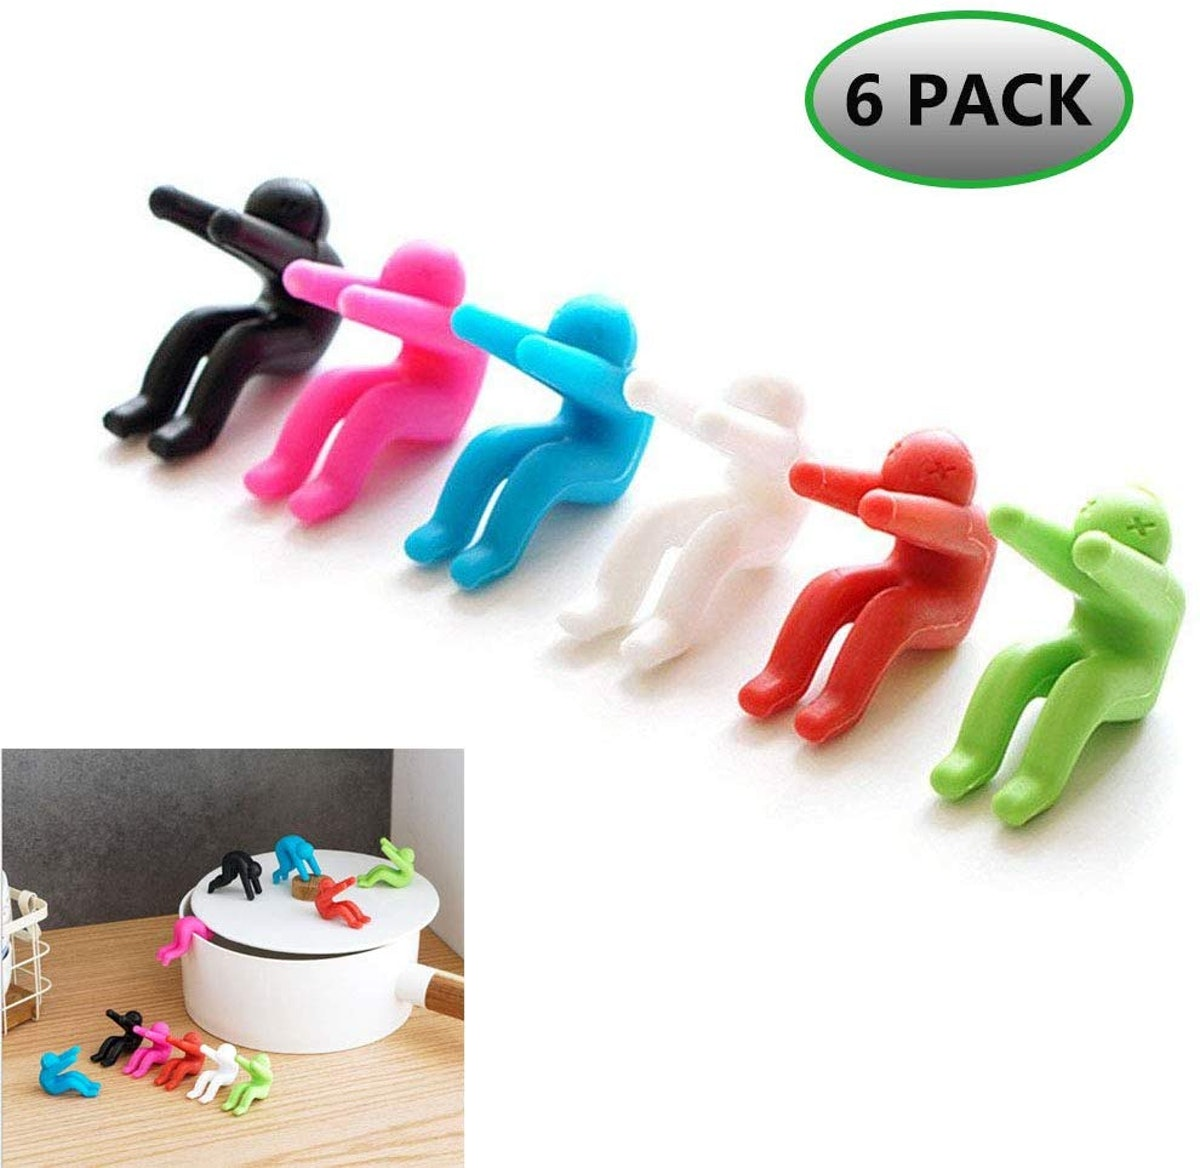 KITCHEN TOOLS Lid Lifters (6-Pack)